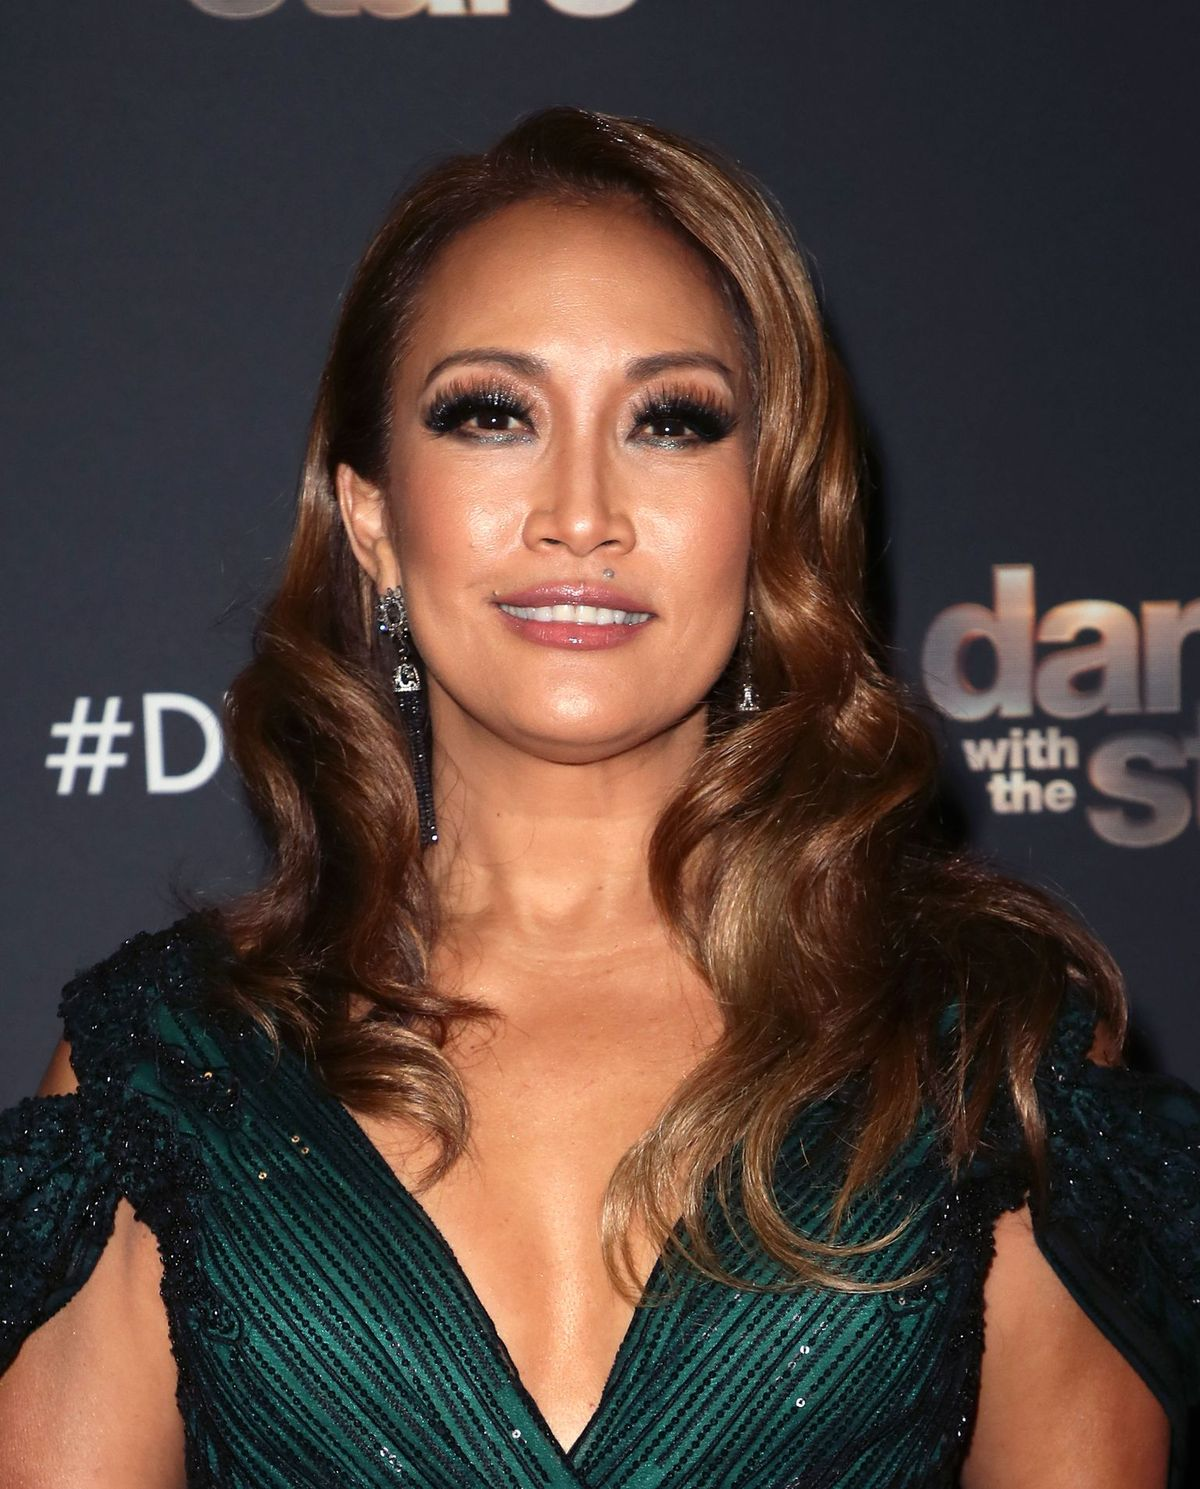 """Carrie Ann Inaba at """"Dancing with the Stars"""" season 28 at CBS Television City on October 14, 2019, in Los Angeles, California 